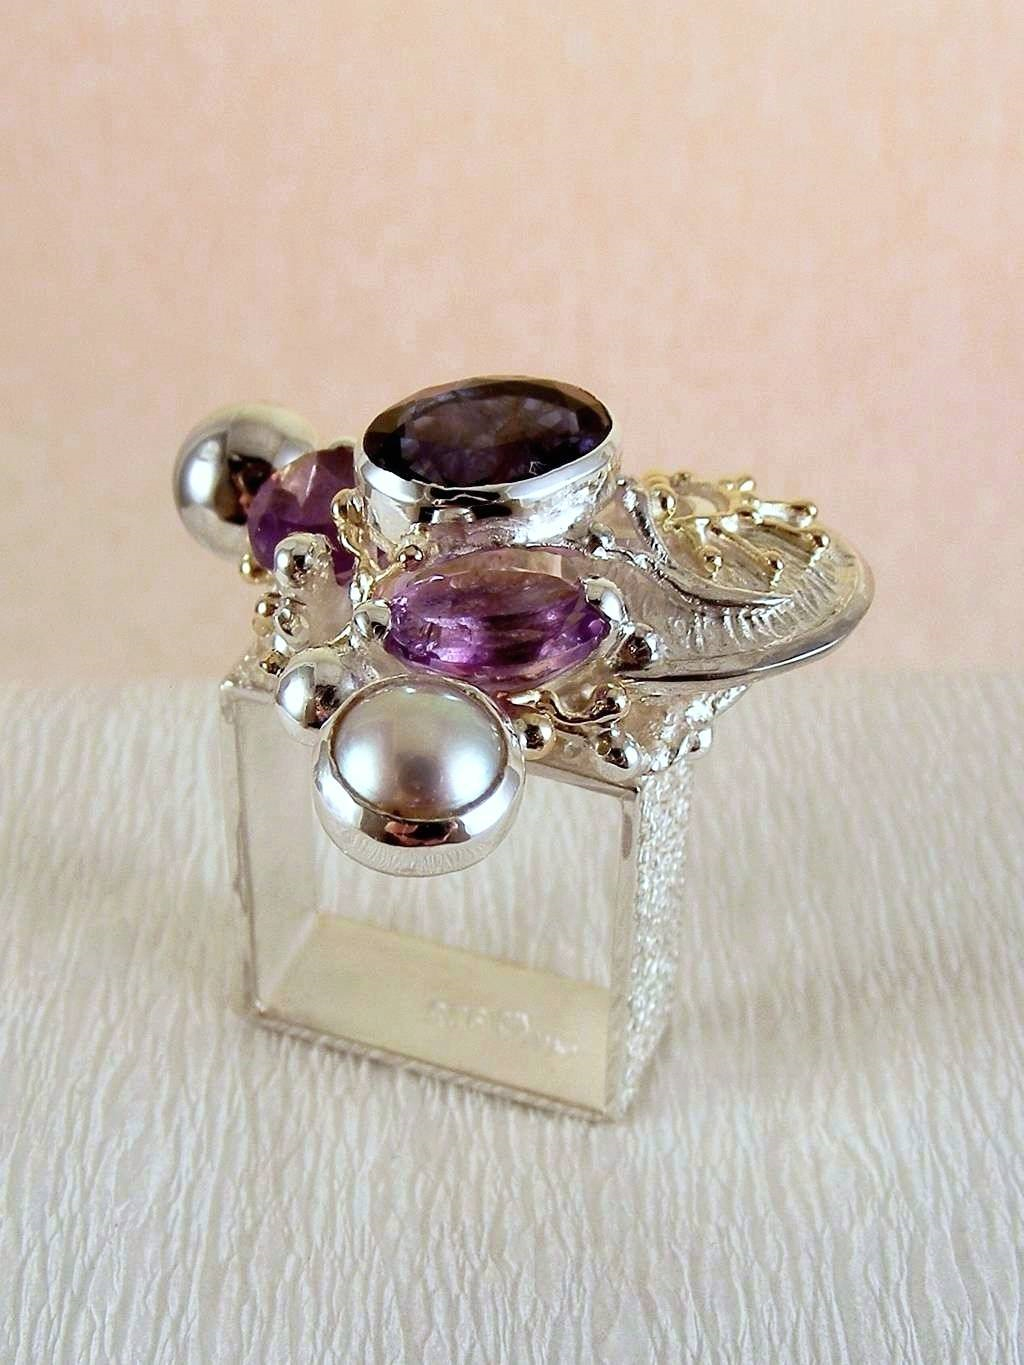 Original Handmade in Sterling Silver and 14 Karat Gold, Iolite, Amethyst, Pearls, One of a Kind Original Handmade Square Ring #3623